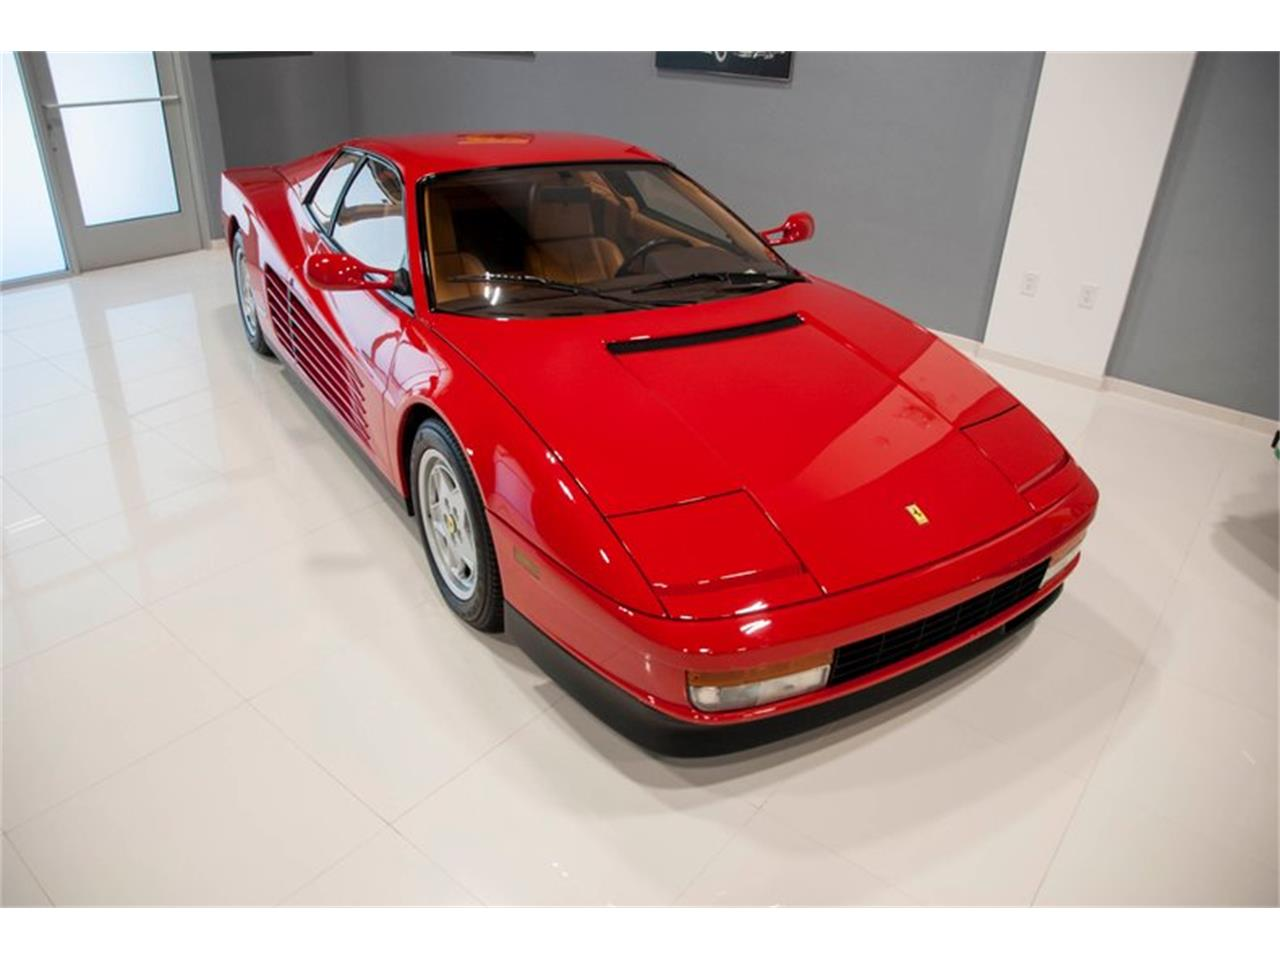 Large Picture of 1991 Testarossa located in Miami Florida - $249,900.00 - P9H3